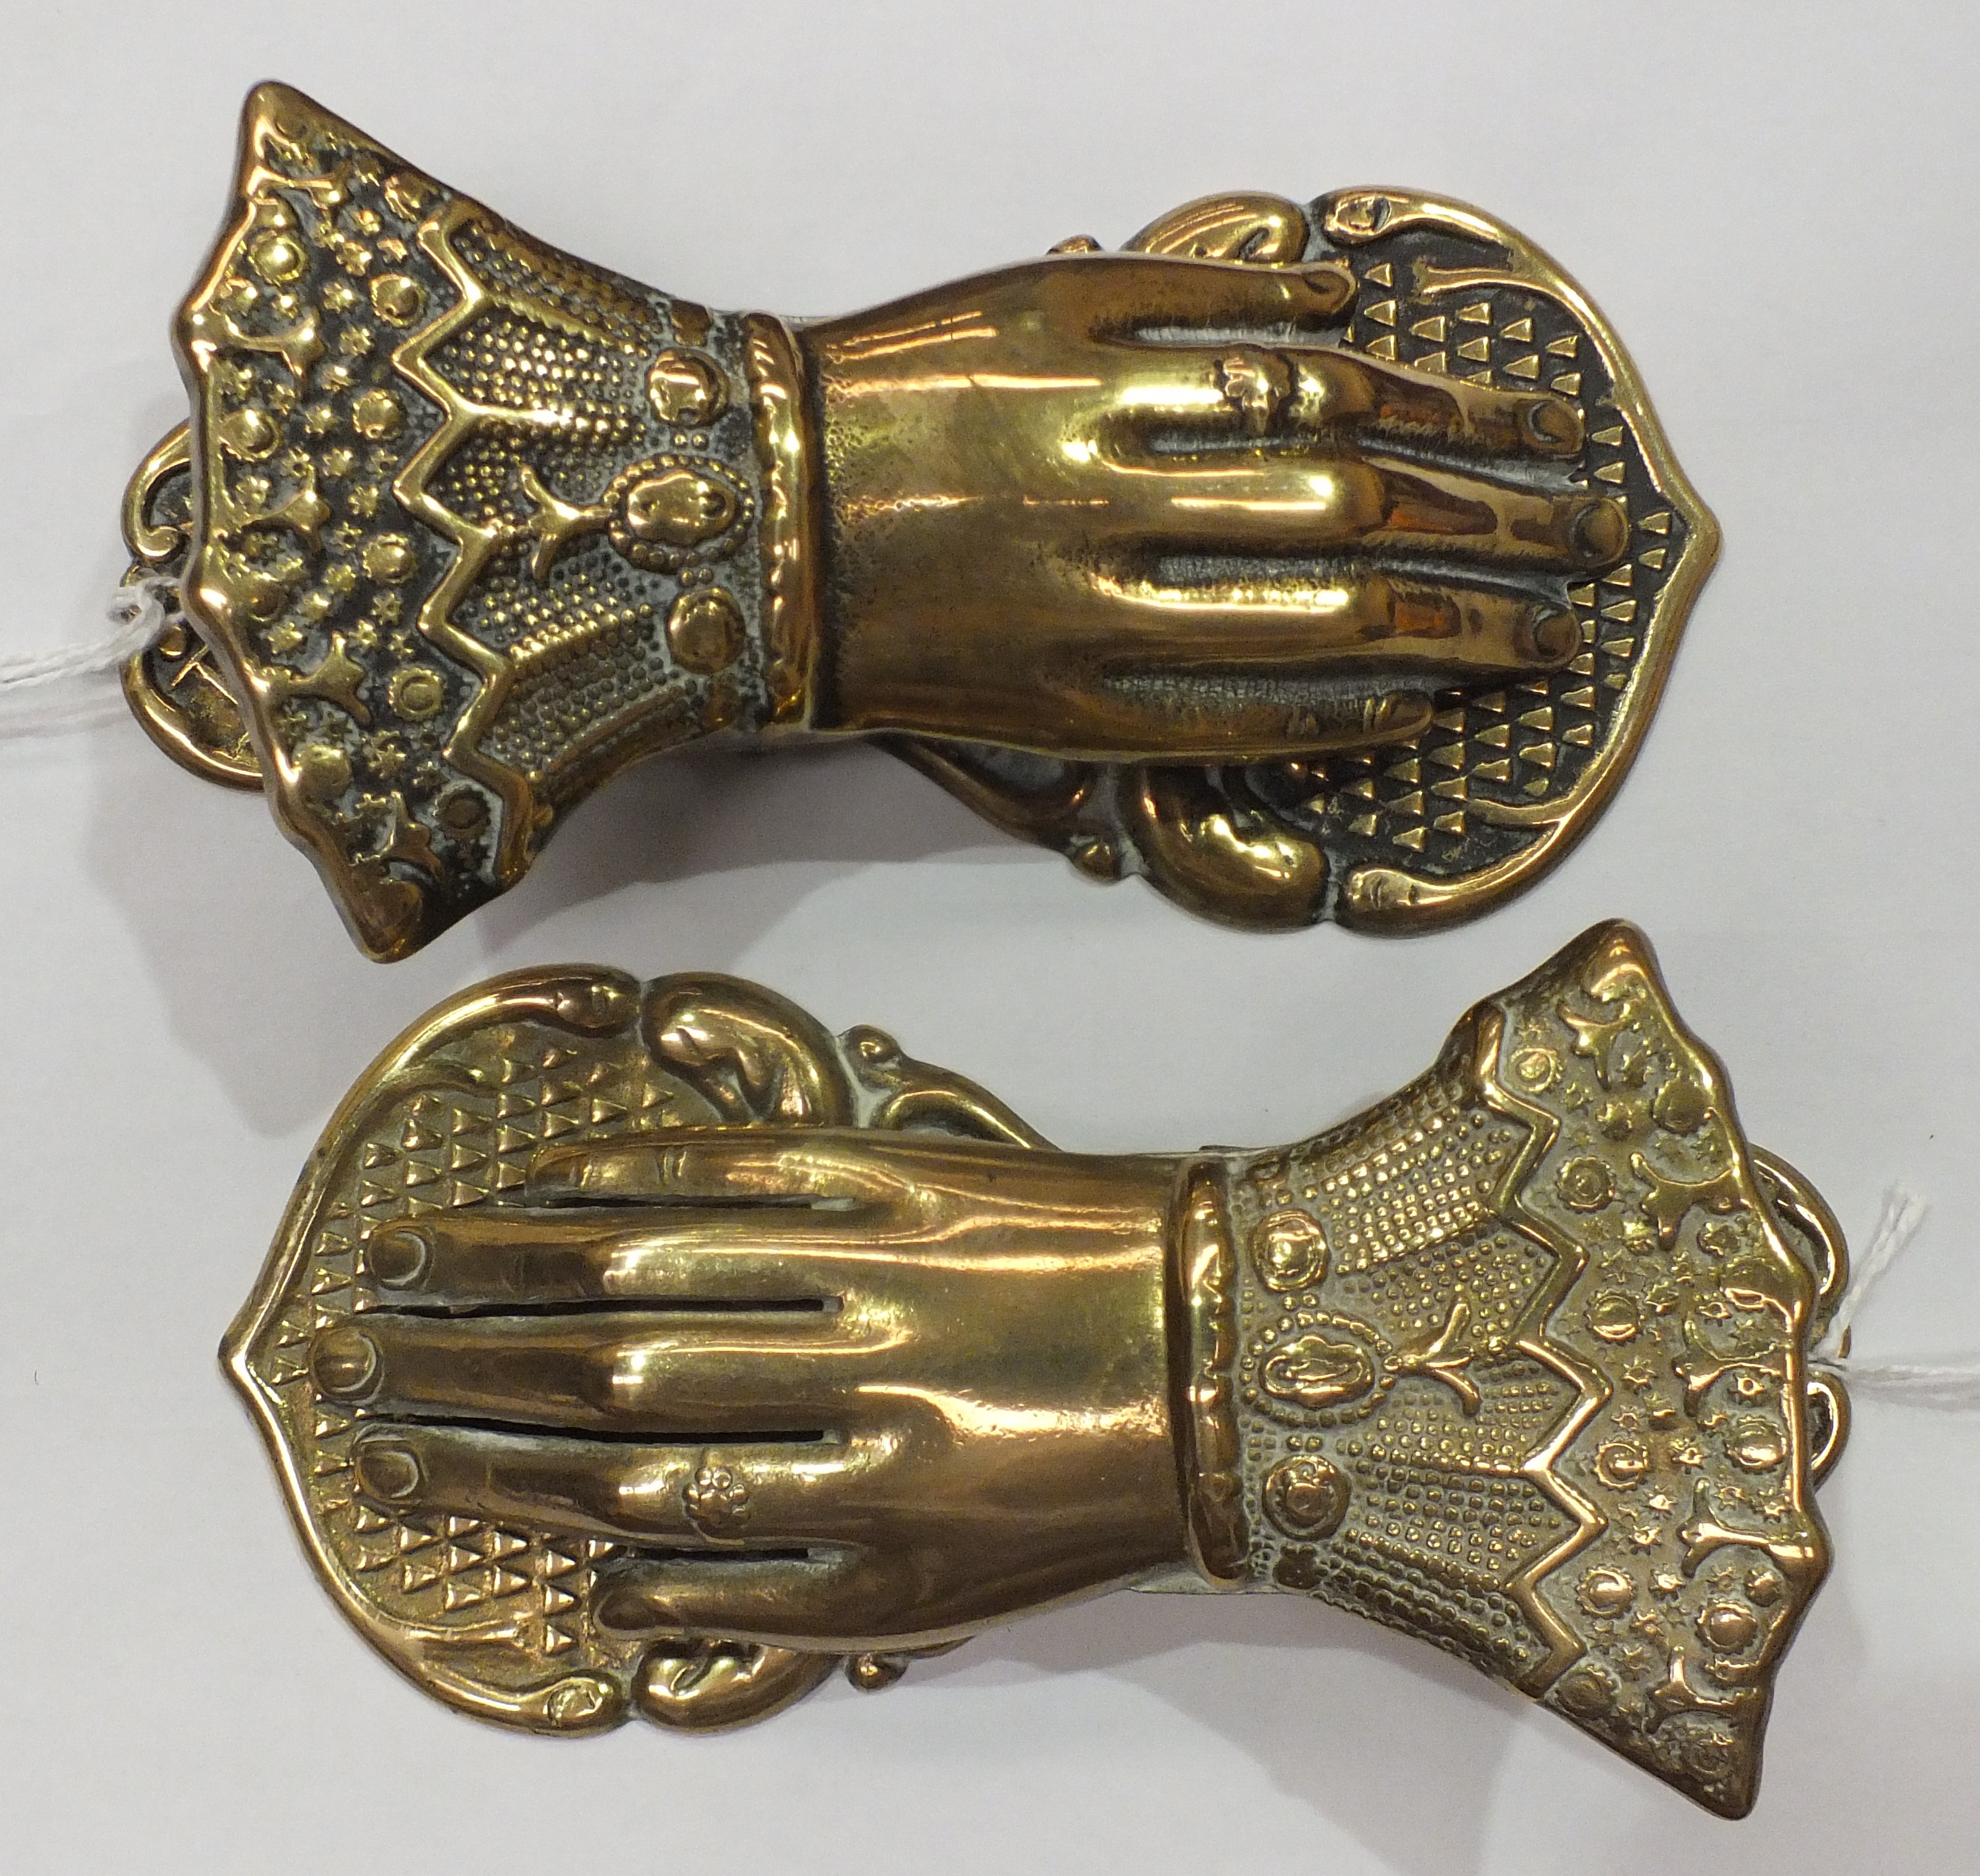 Lot 215 - Two brass paper tidies, each in the form of a human hand, 13cm long.